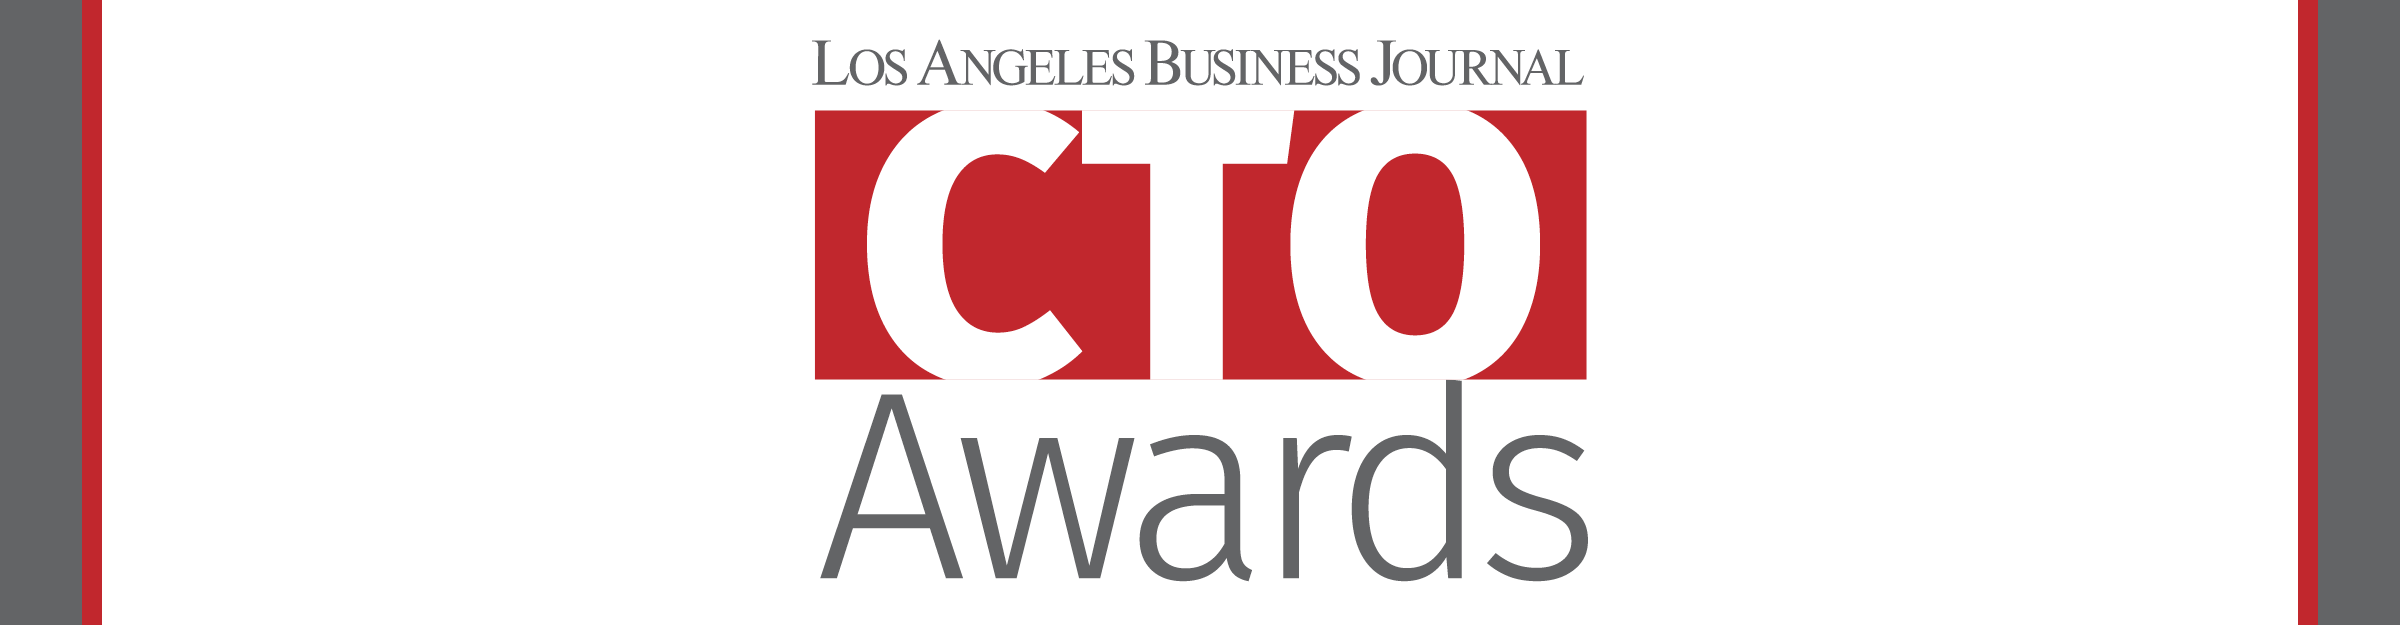 Los Angeles Business Journal CTO Event Banner